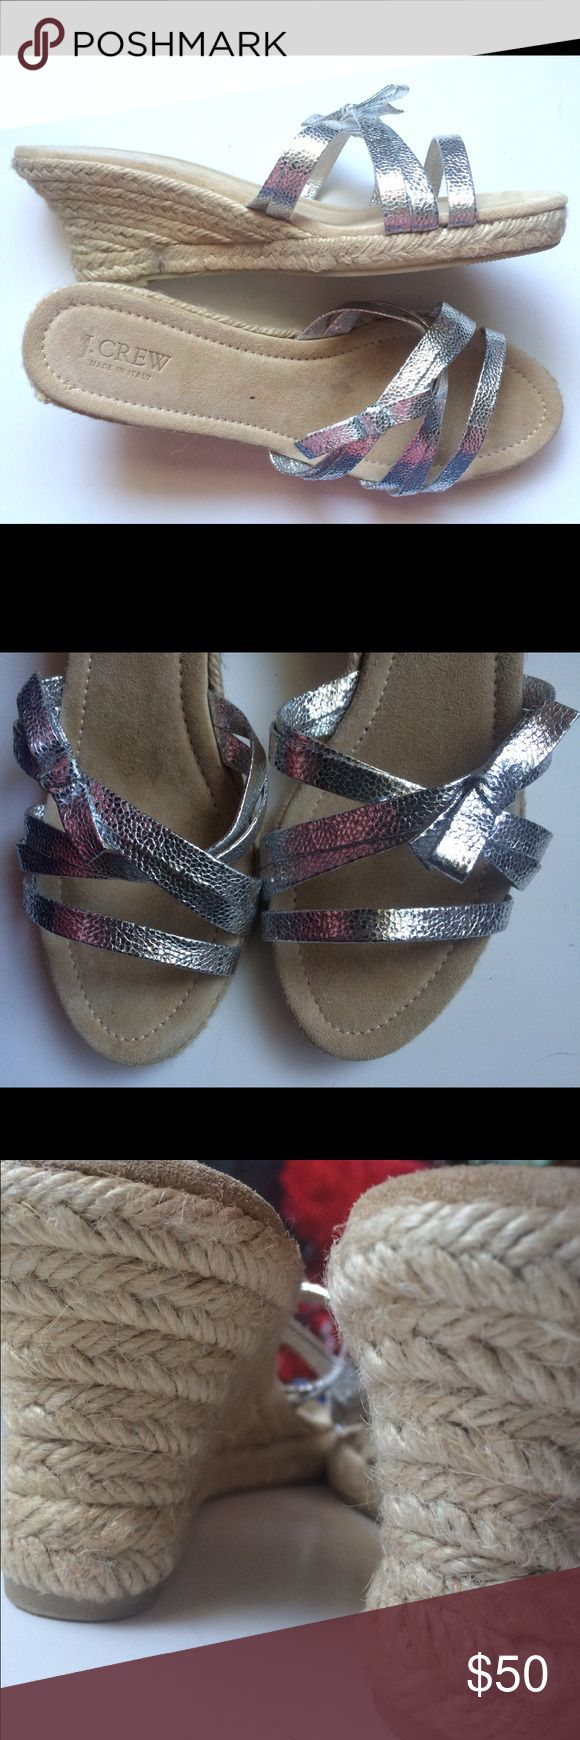 •J.CREW• Metallic Silver Espadrille Wedges Size 9 Like new. Marked 10 but do not fit size 10. Fits 8.5-9 better. J. Crew Shoes Espadrilles